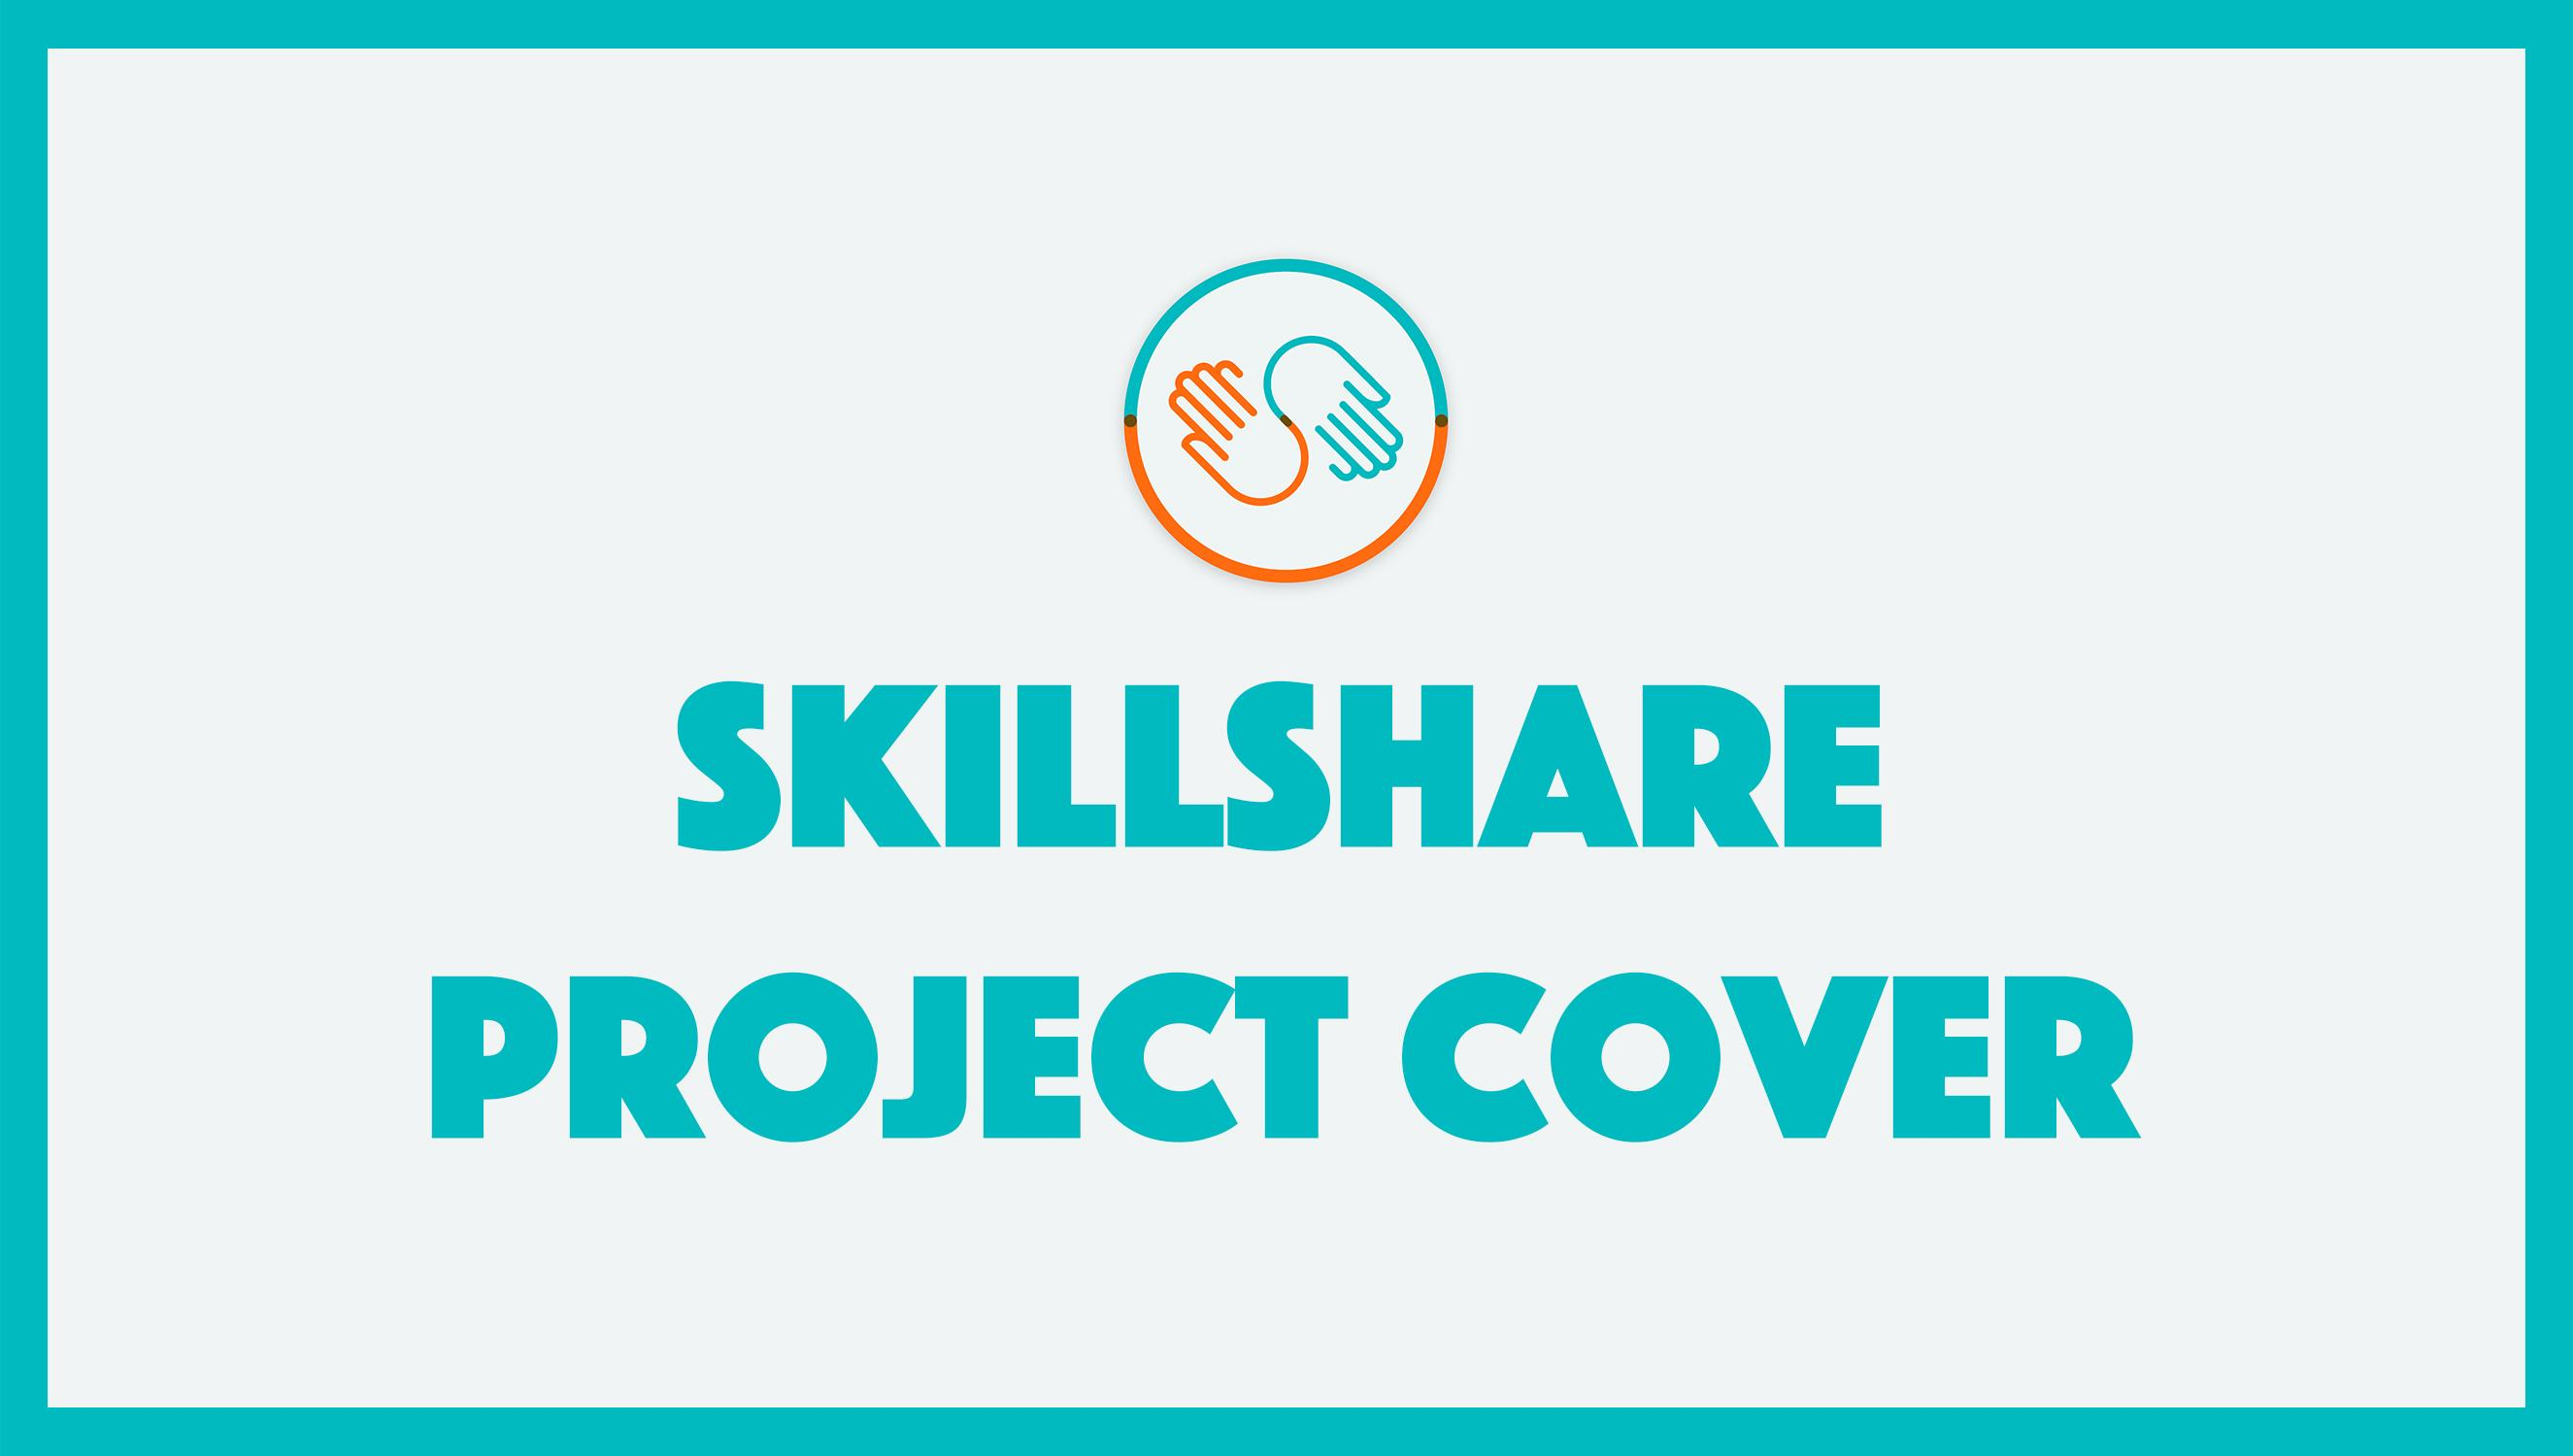 project cover template for photoshop illustrator skillshare project cover template for photoshop illustrator